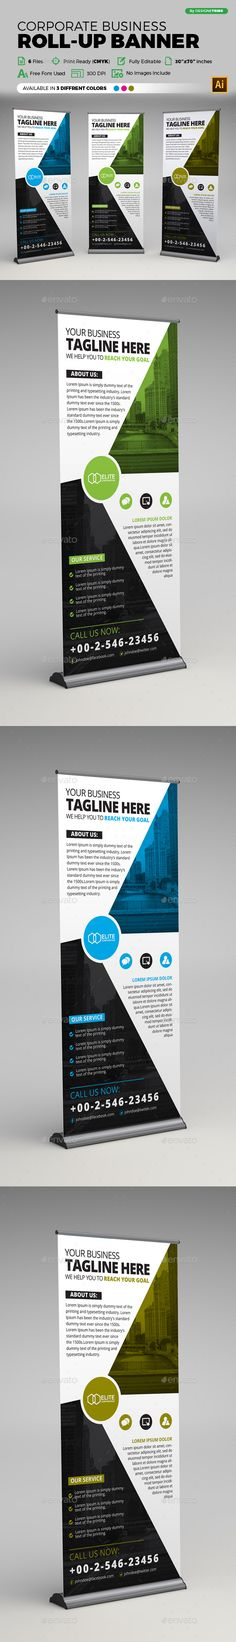 Buy Corporate Business Roll-up Banner by arsalanhanif on GraphicRiver. Corporate Business Roll-up Banner Template. This layout is suitable for any business. Very easy to use and customize. Signage Design, Banner Design, Rollup Banner, Corporate Business, Banner Template, Design Projects, Rolls, Ai Illustrator, Design Inspiration